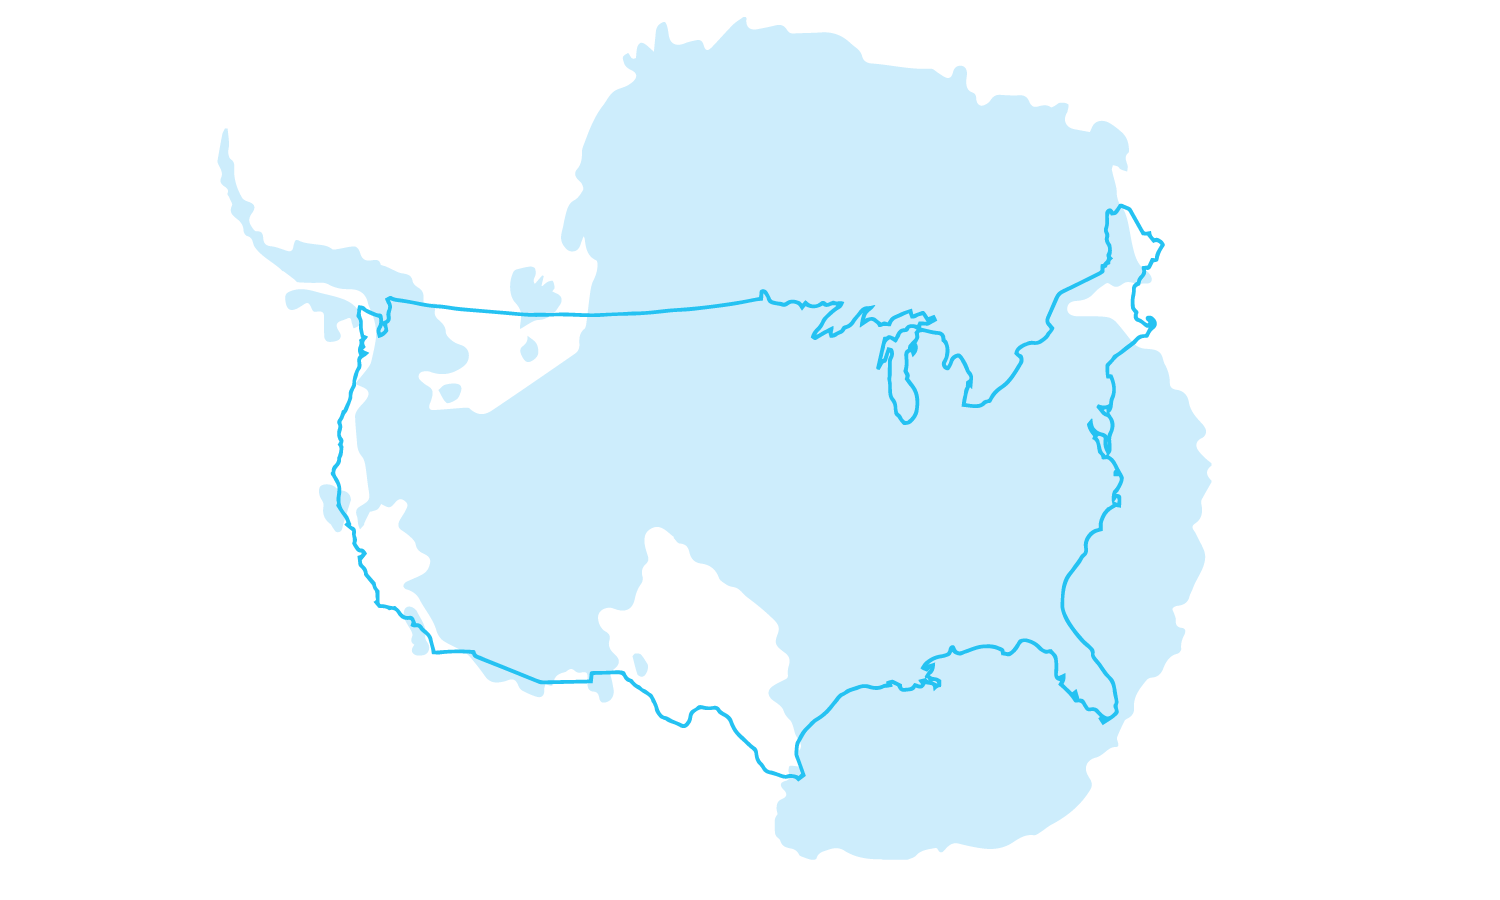 The size of U.S.A. compared to Antarctica